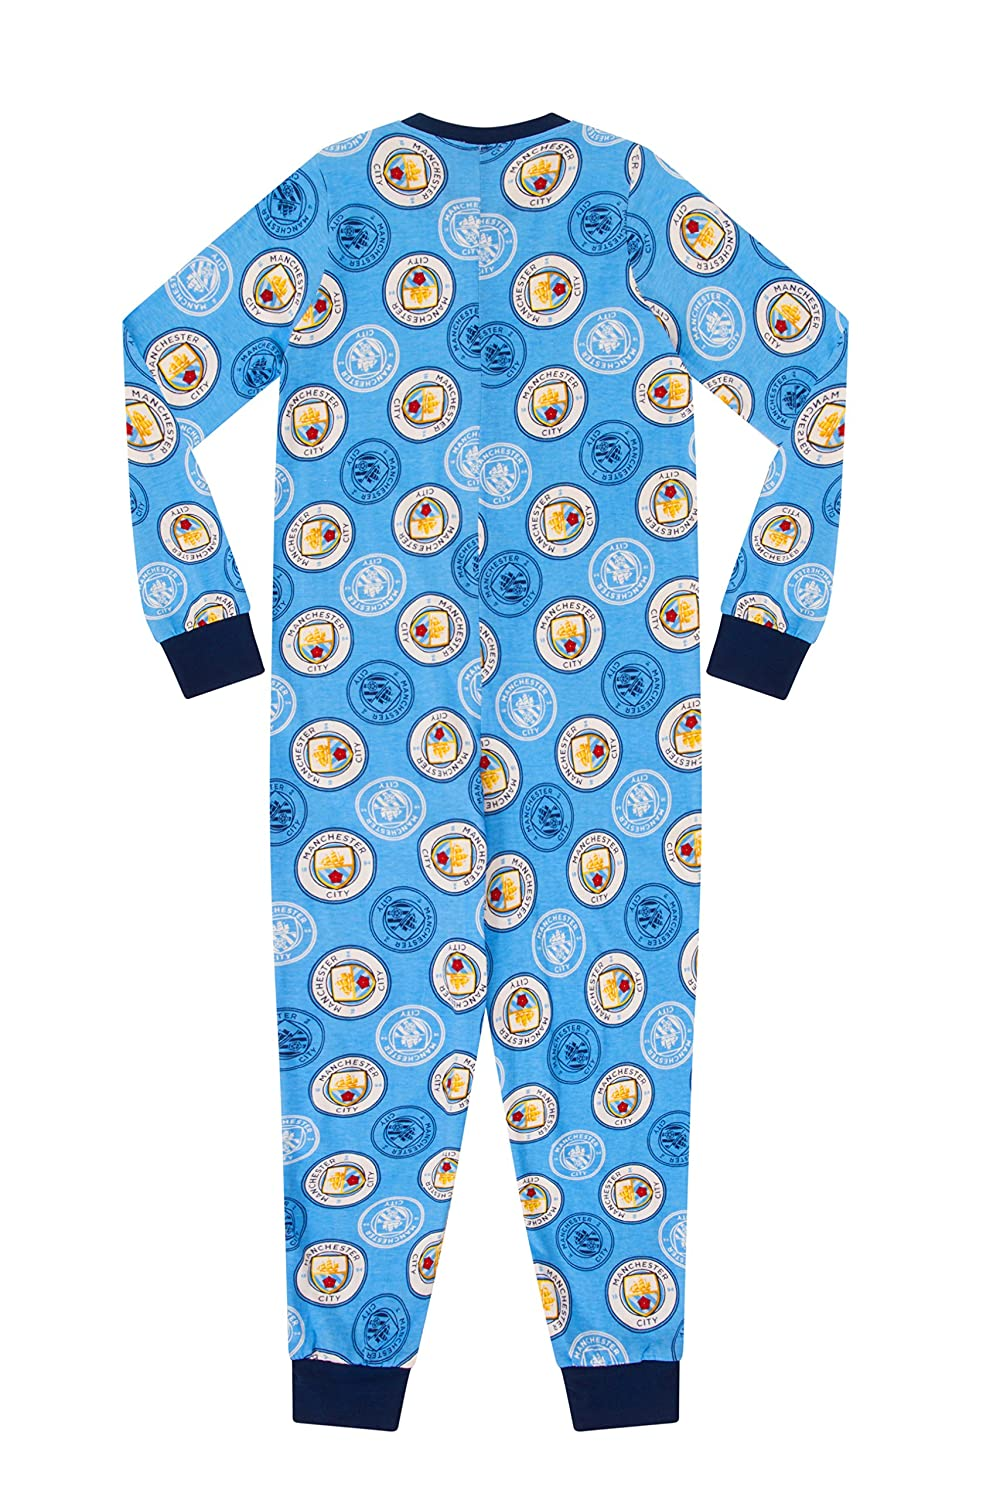 2597782c0 Manchester City Onesie 7 to 13 Years Man City Sleepsuit All in one ...